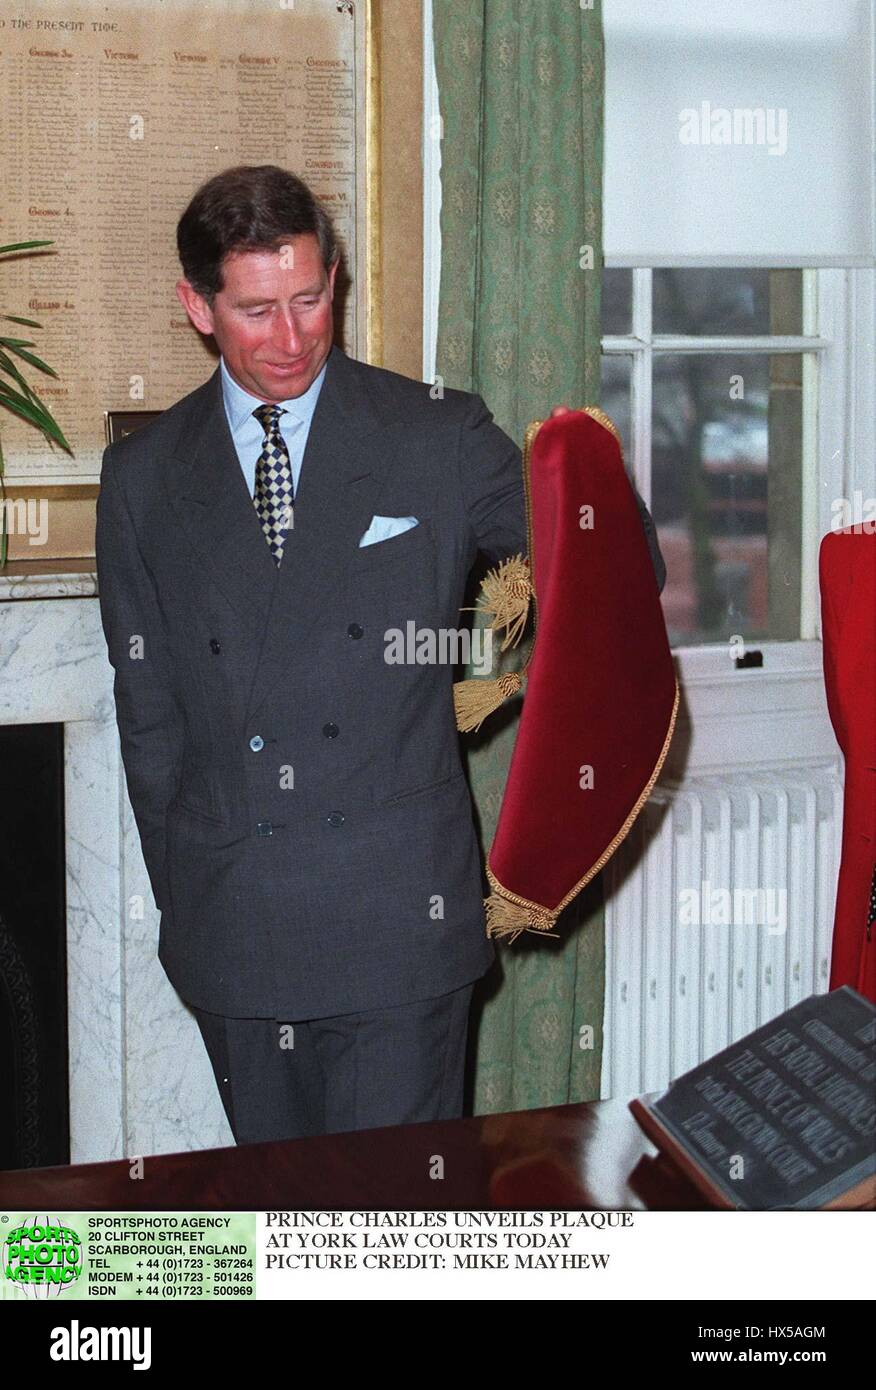 PRINCE CHARLES UNVEILS PLAQUE IN YORKS LAW COURTS 15 January 1996 - Stock Image